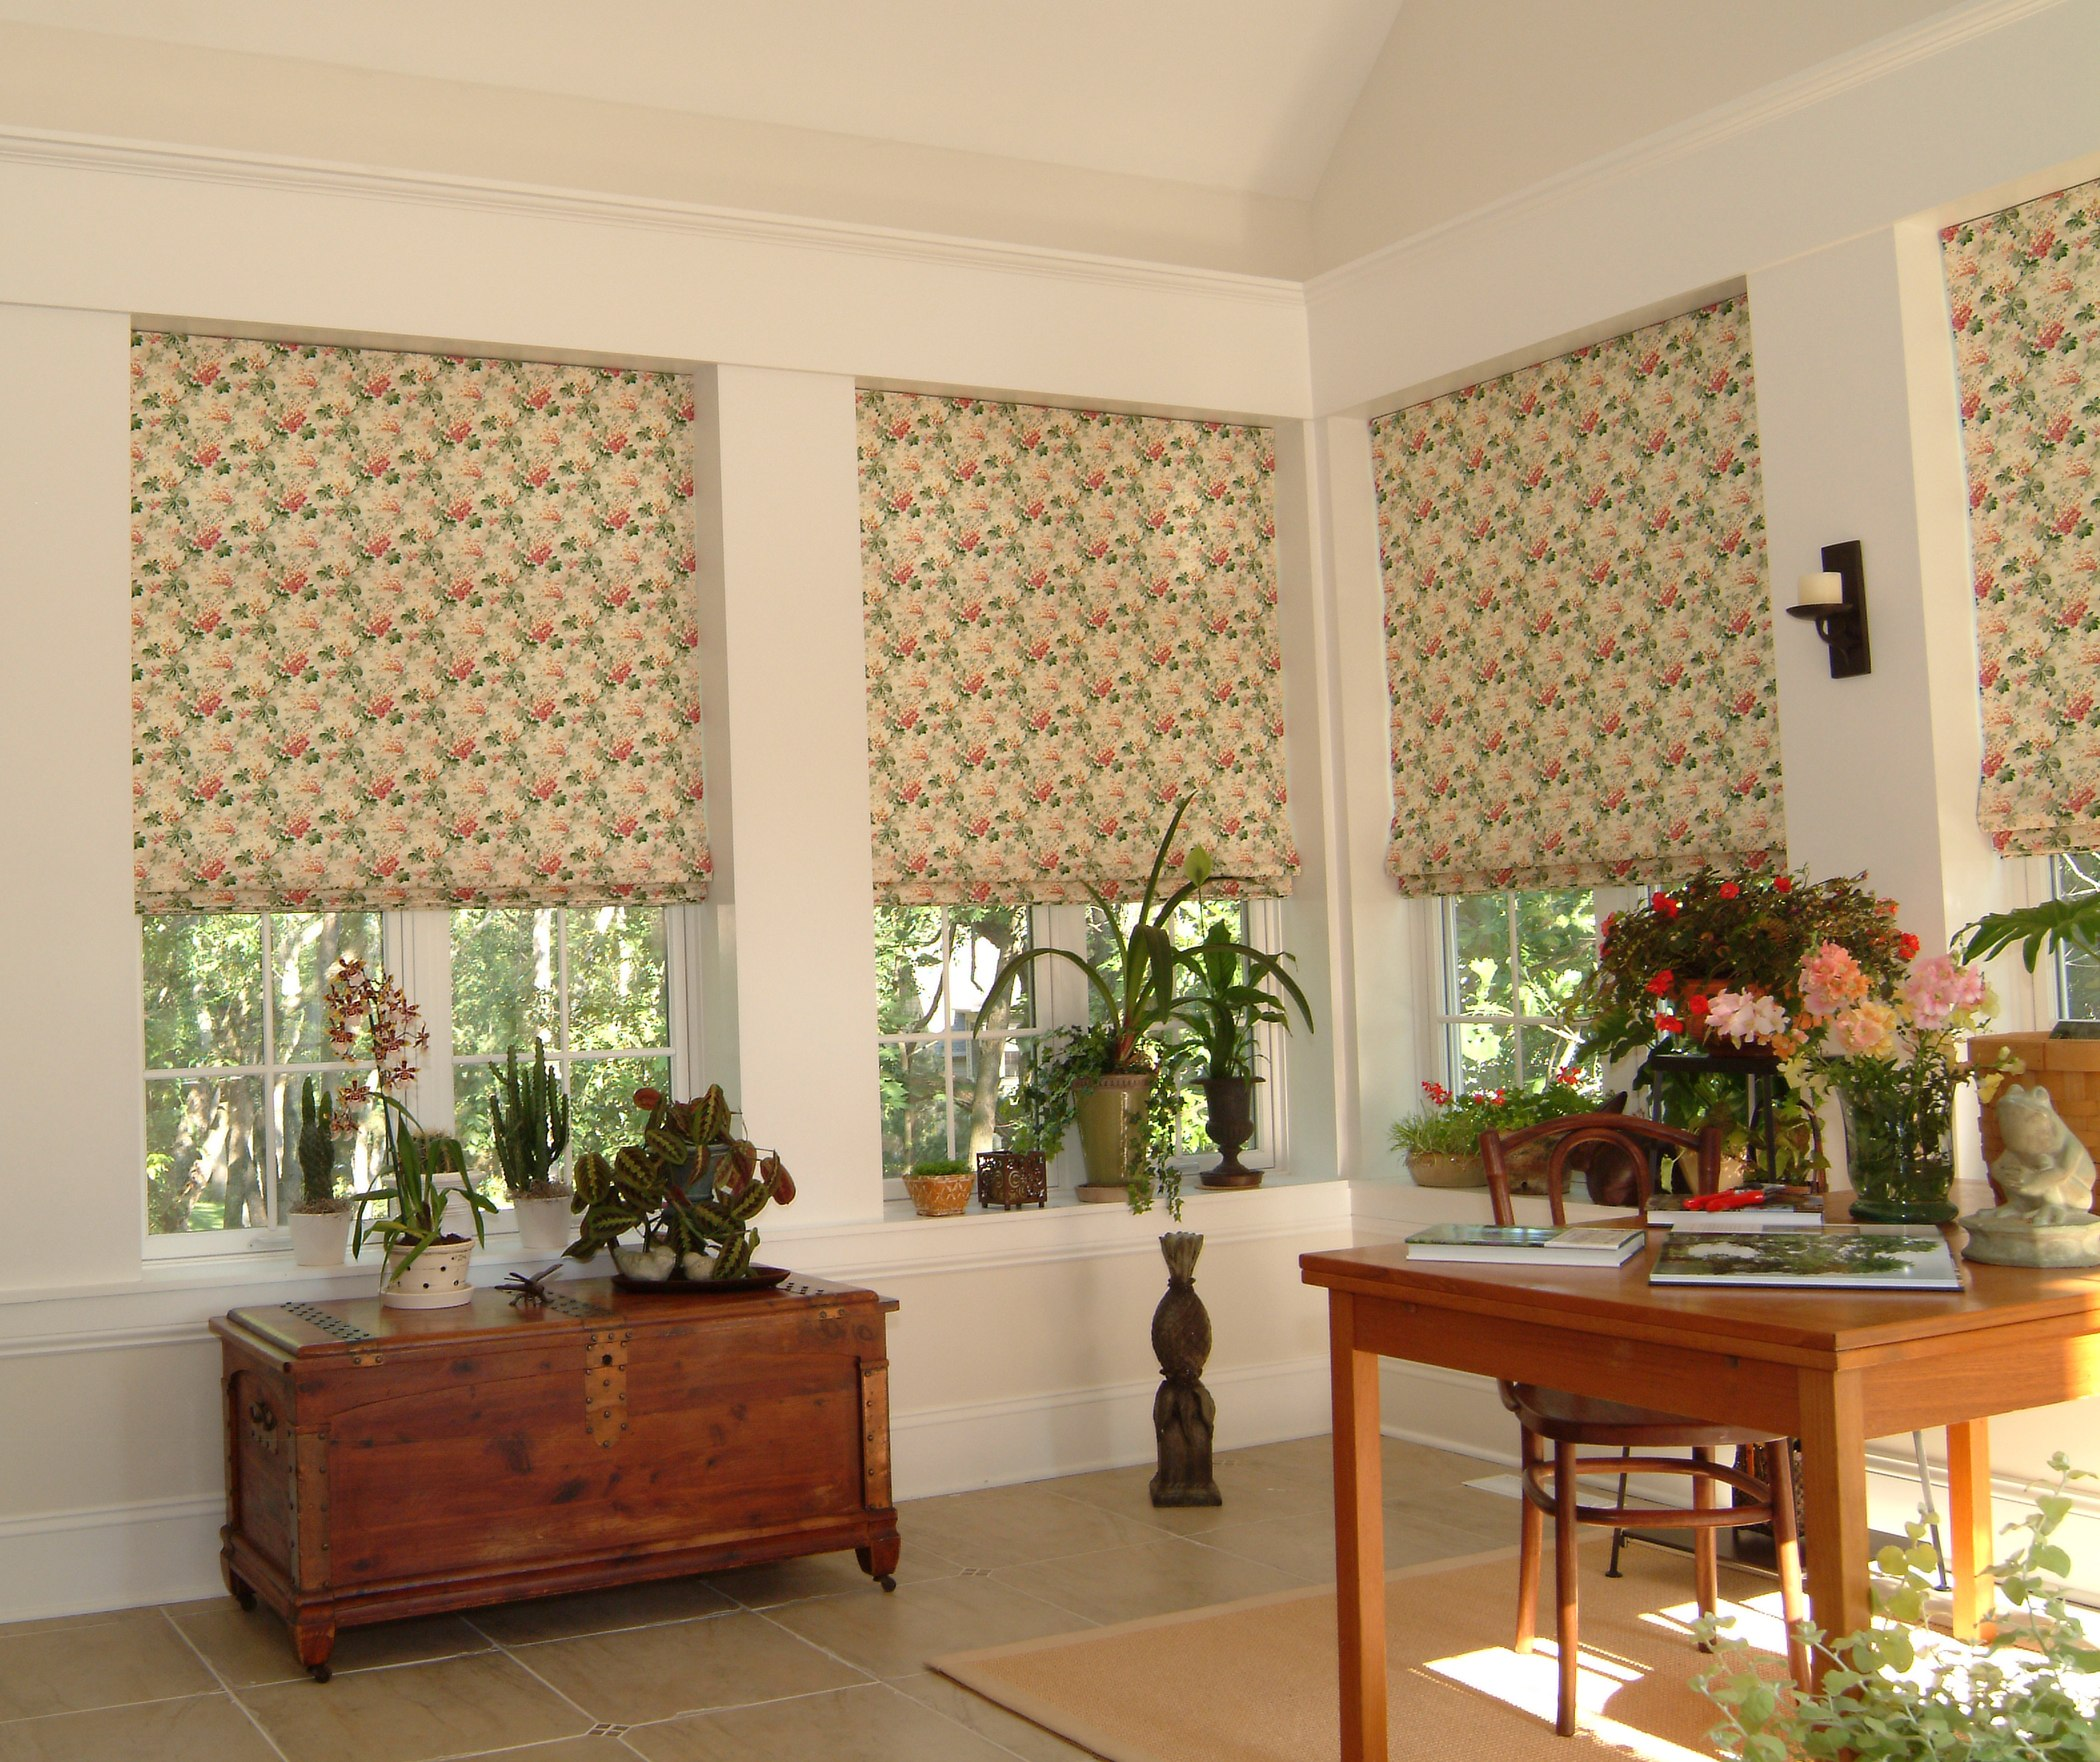 trendy office designs blinds. Classic Roman Shades Trendy Office Designs Blinds N